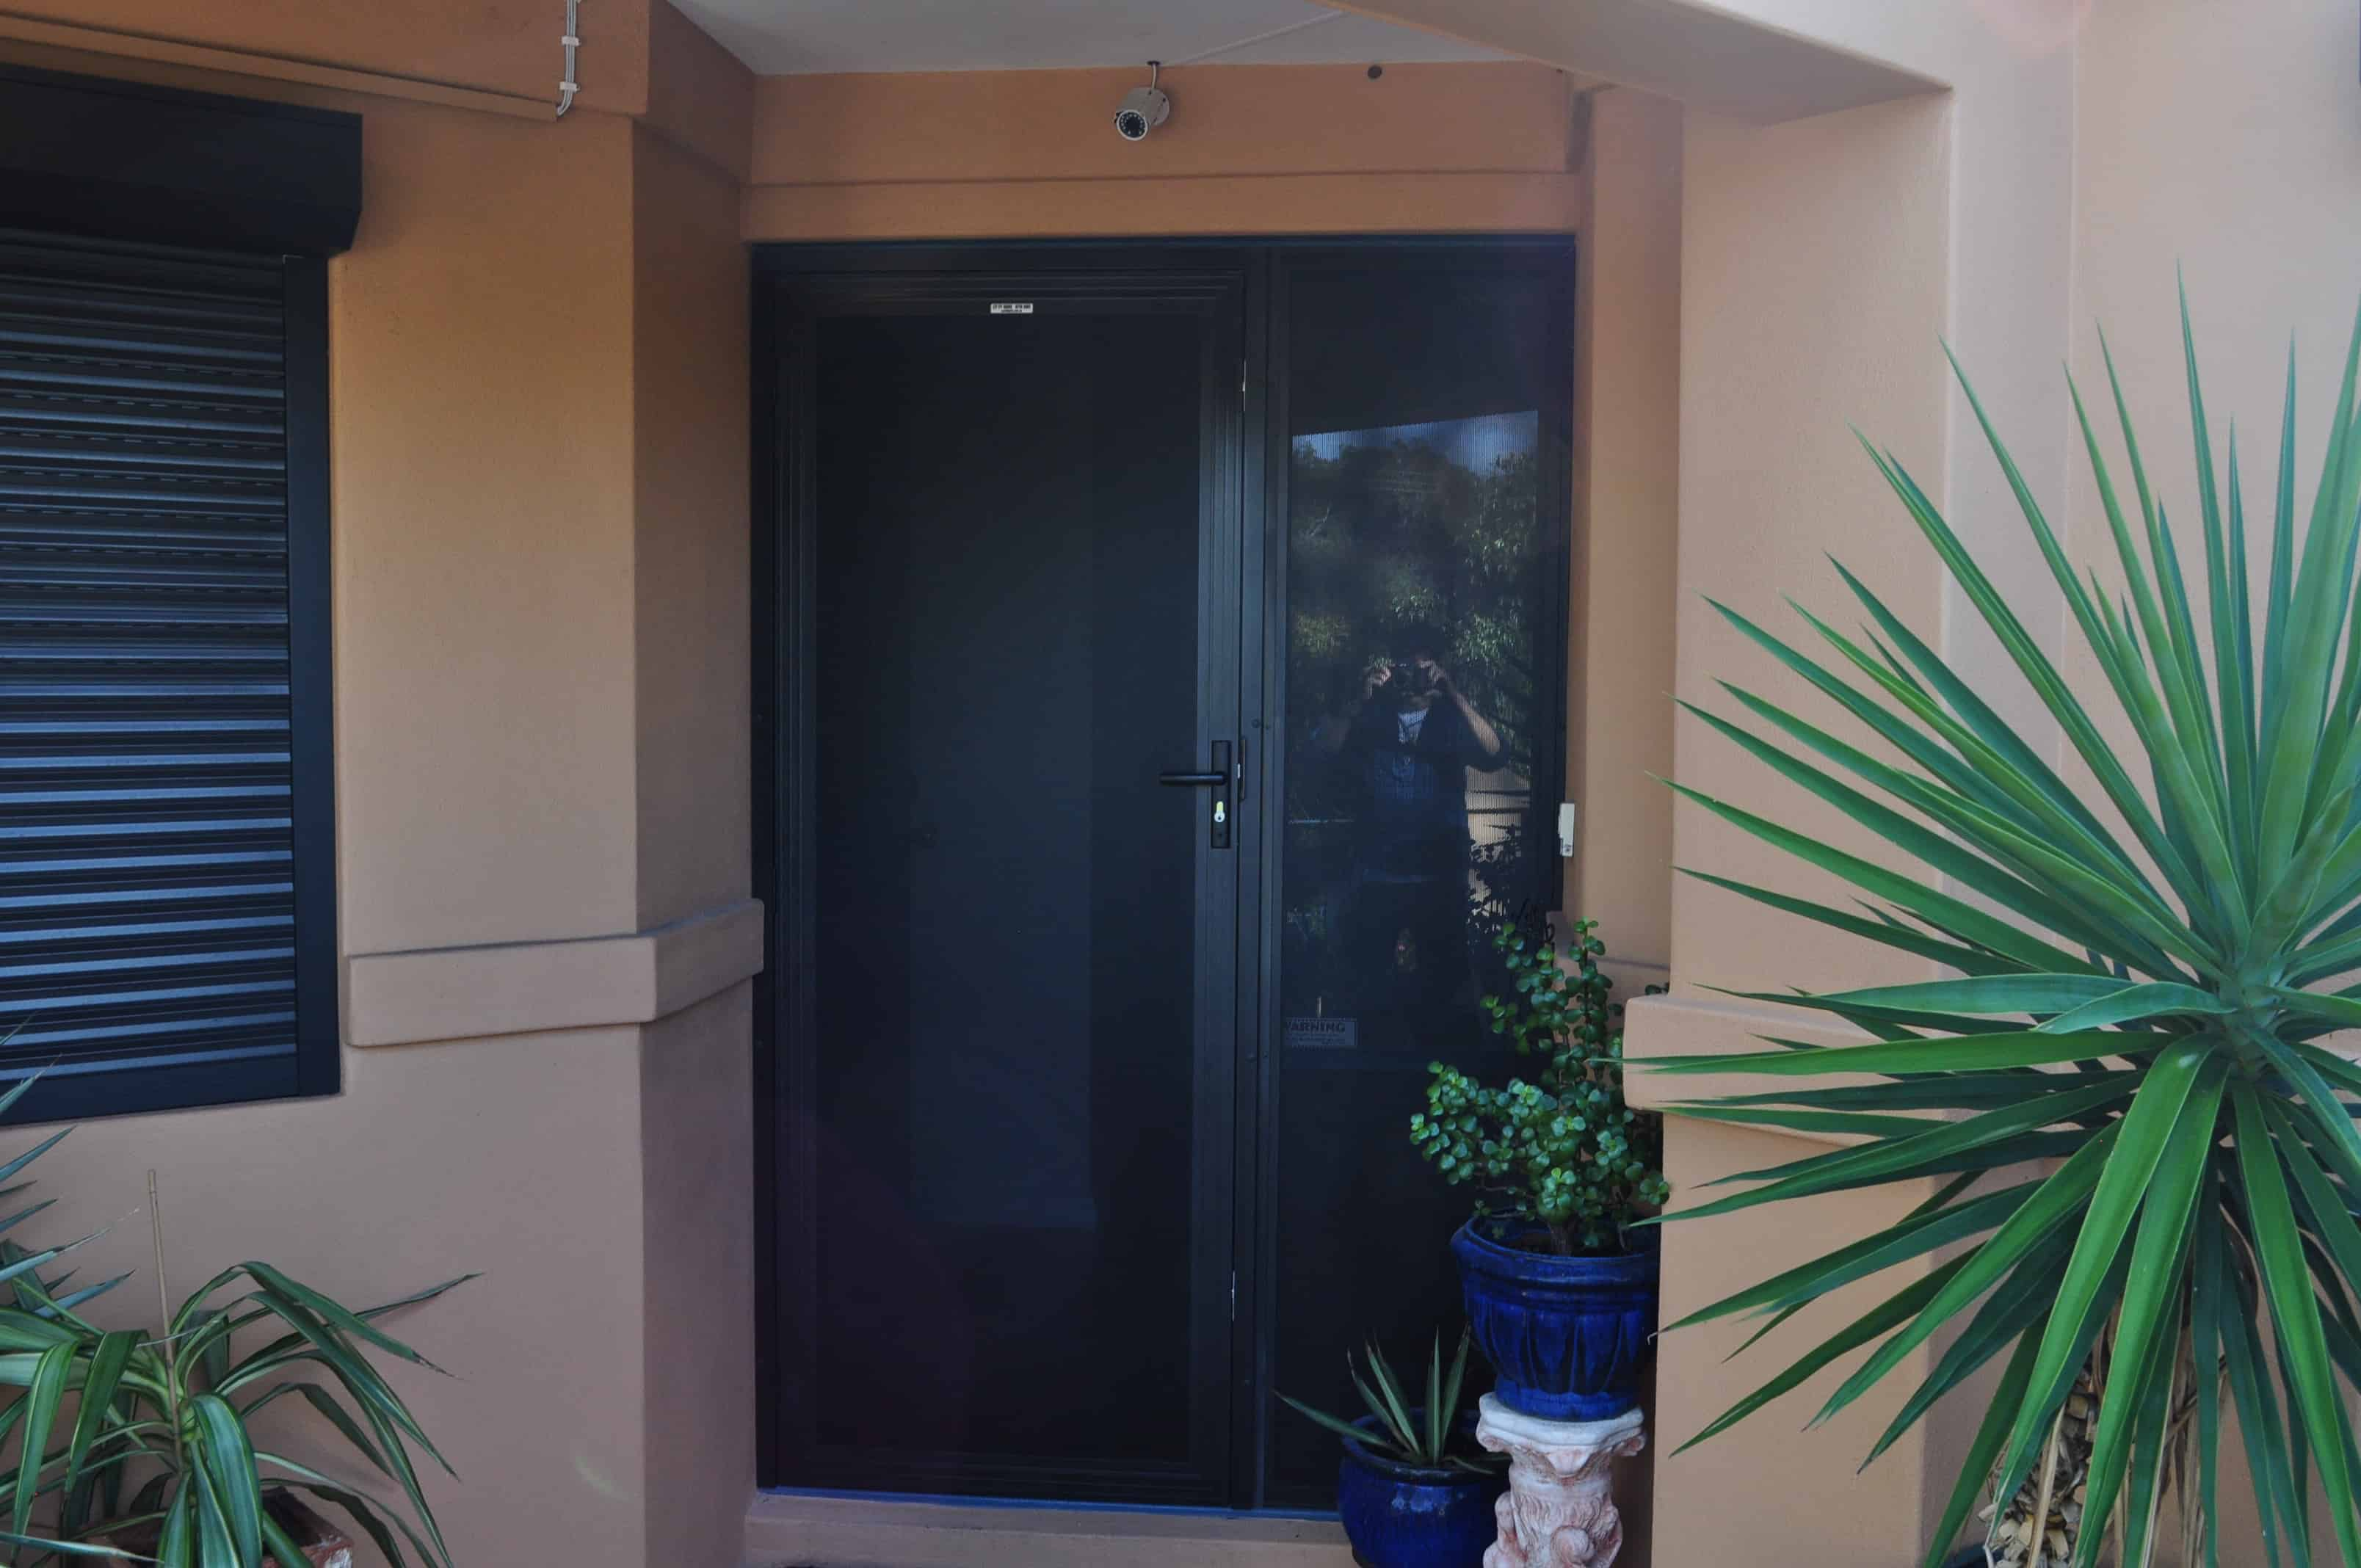 Together with our old fashioned service and commitment to using only the highest quality locally sourced materials we believe you will notice the ... & Security Doors Perth - Security Screens | Ezy Fit Doors pezcame.com